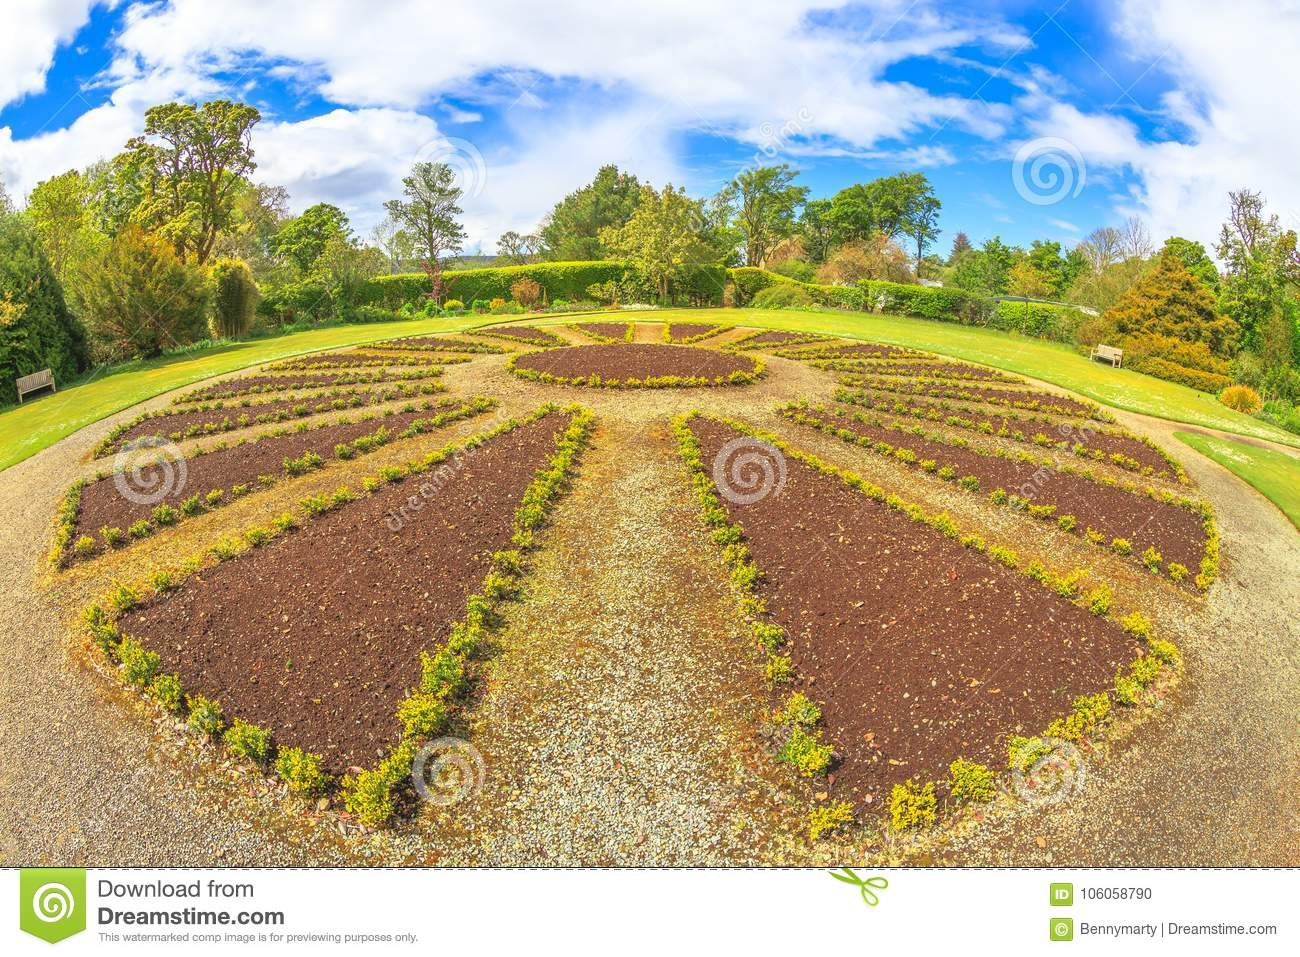 Dunvegan garden flowerbed stock photo. Image of touristic - 106058790